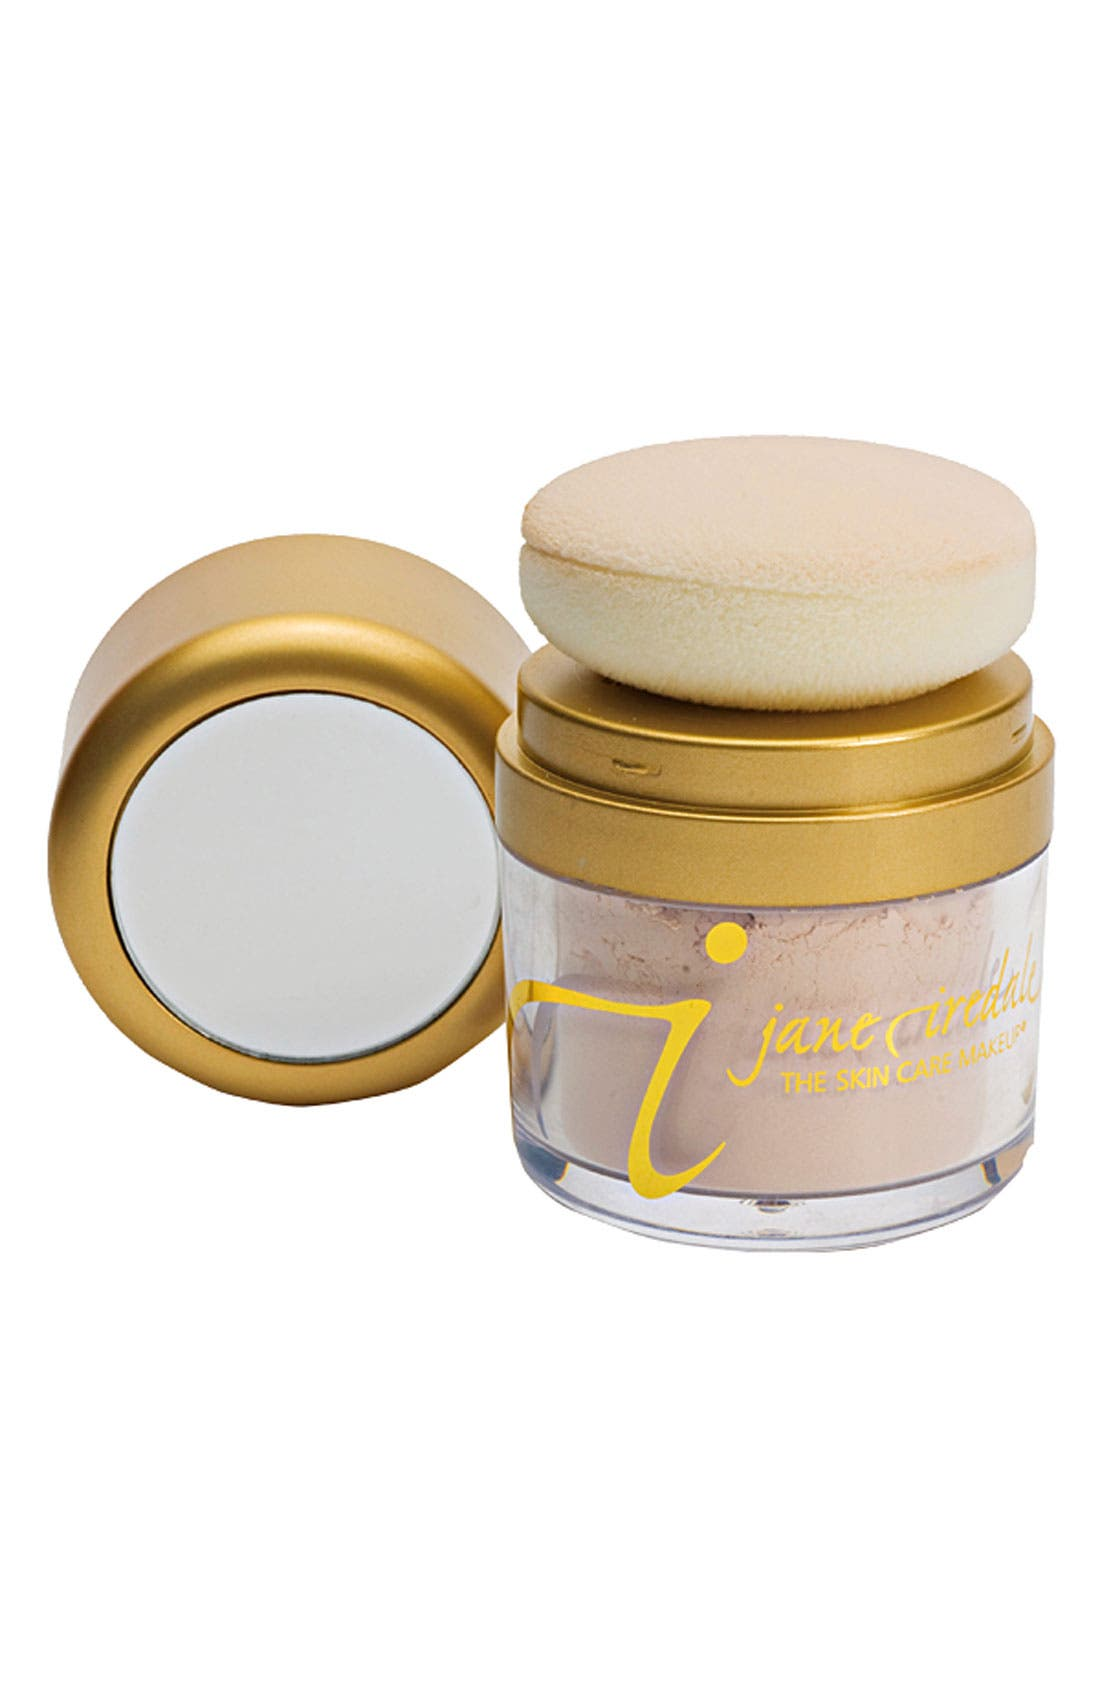 jane iredale Powder Me Dry Sunscreen Broad Spectrum SPF 30